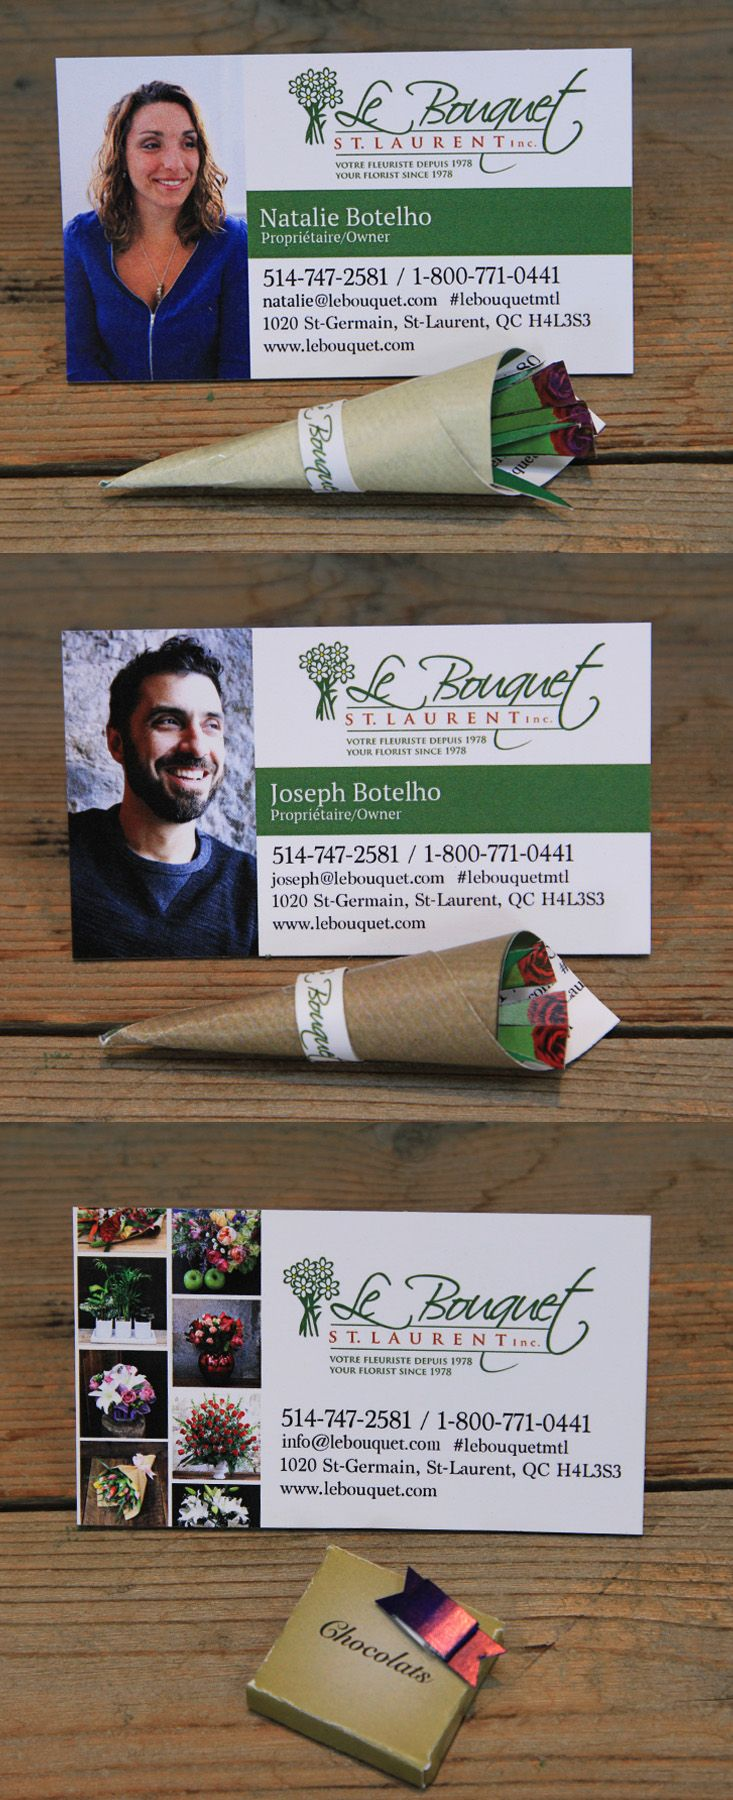 Our new business cards. Each folds into a miniature bouquet or a box of our chocolates www.lebouquet.com